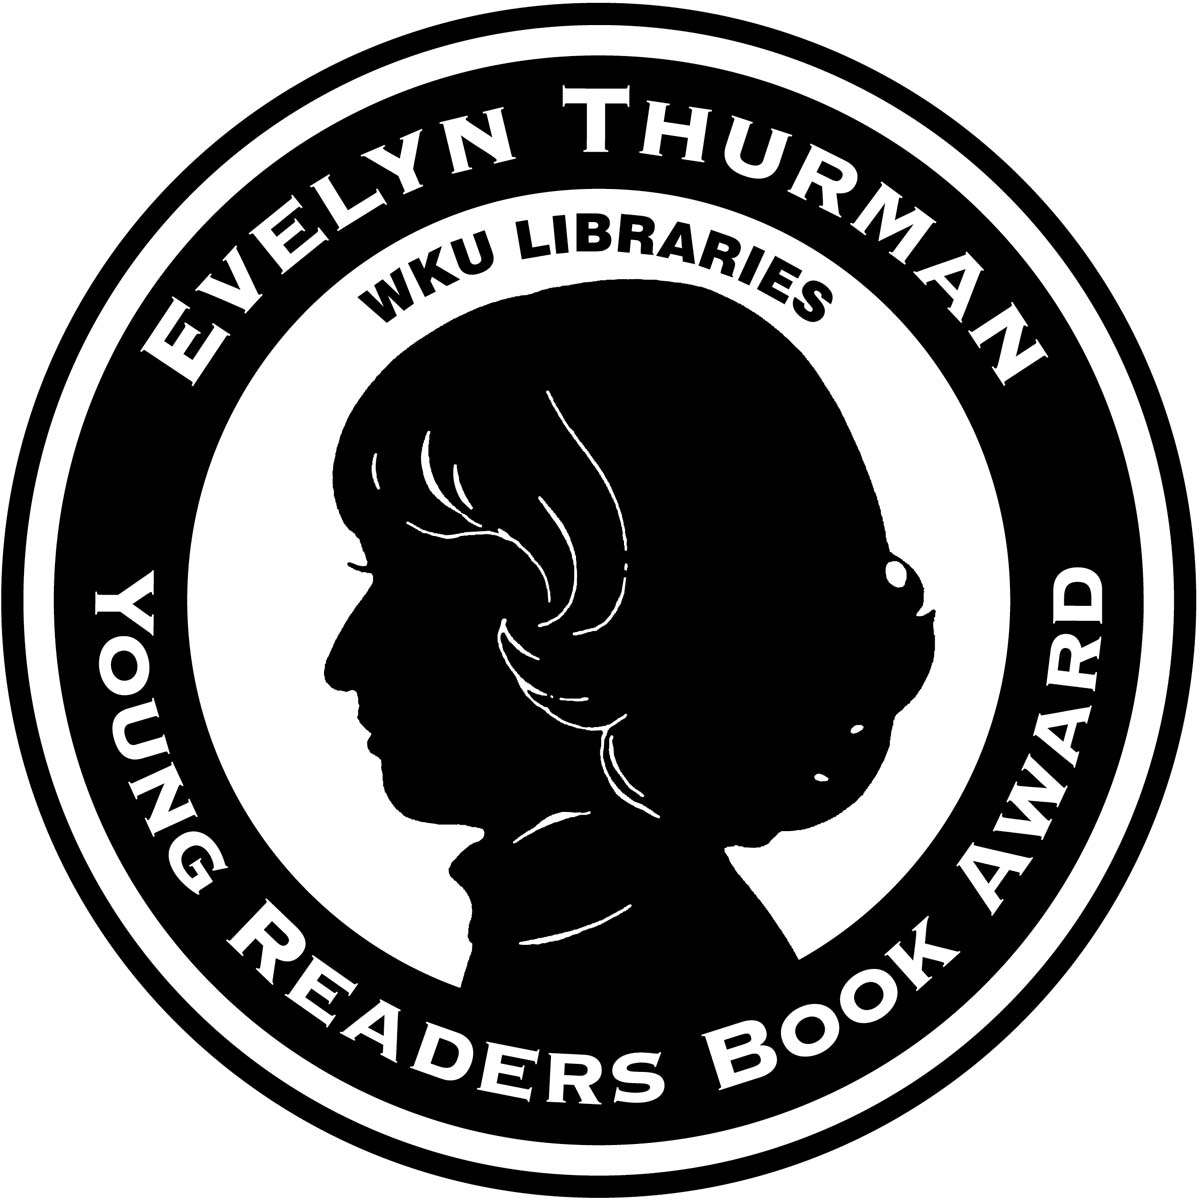 Evelyn Thurman Young Readers Book Award